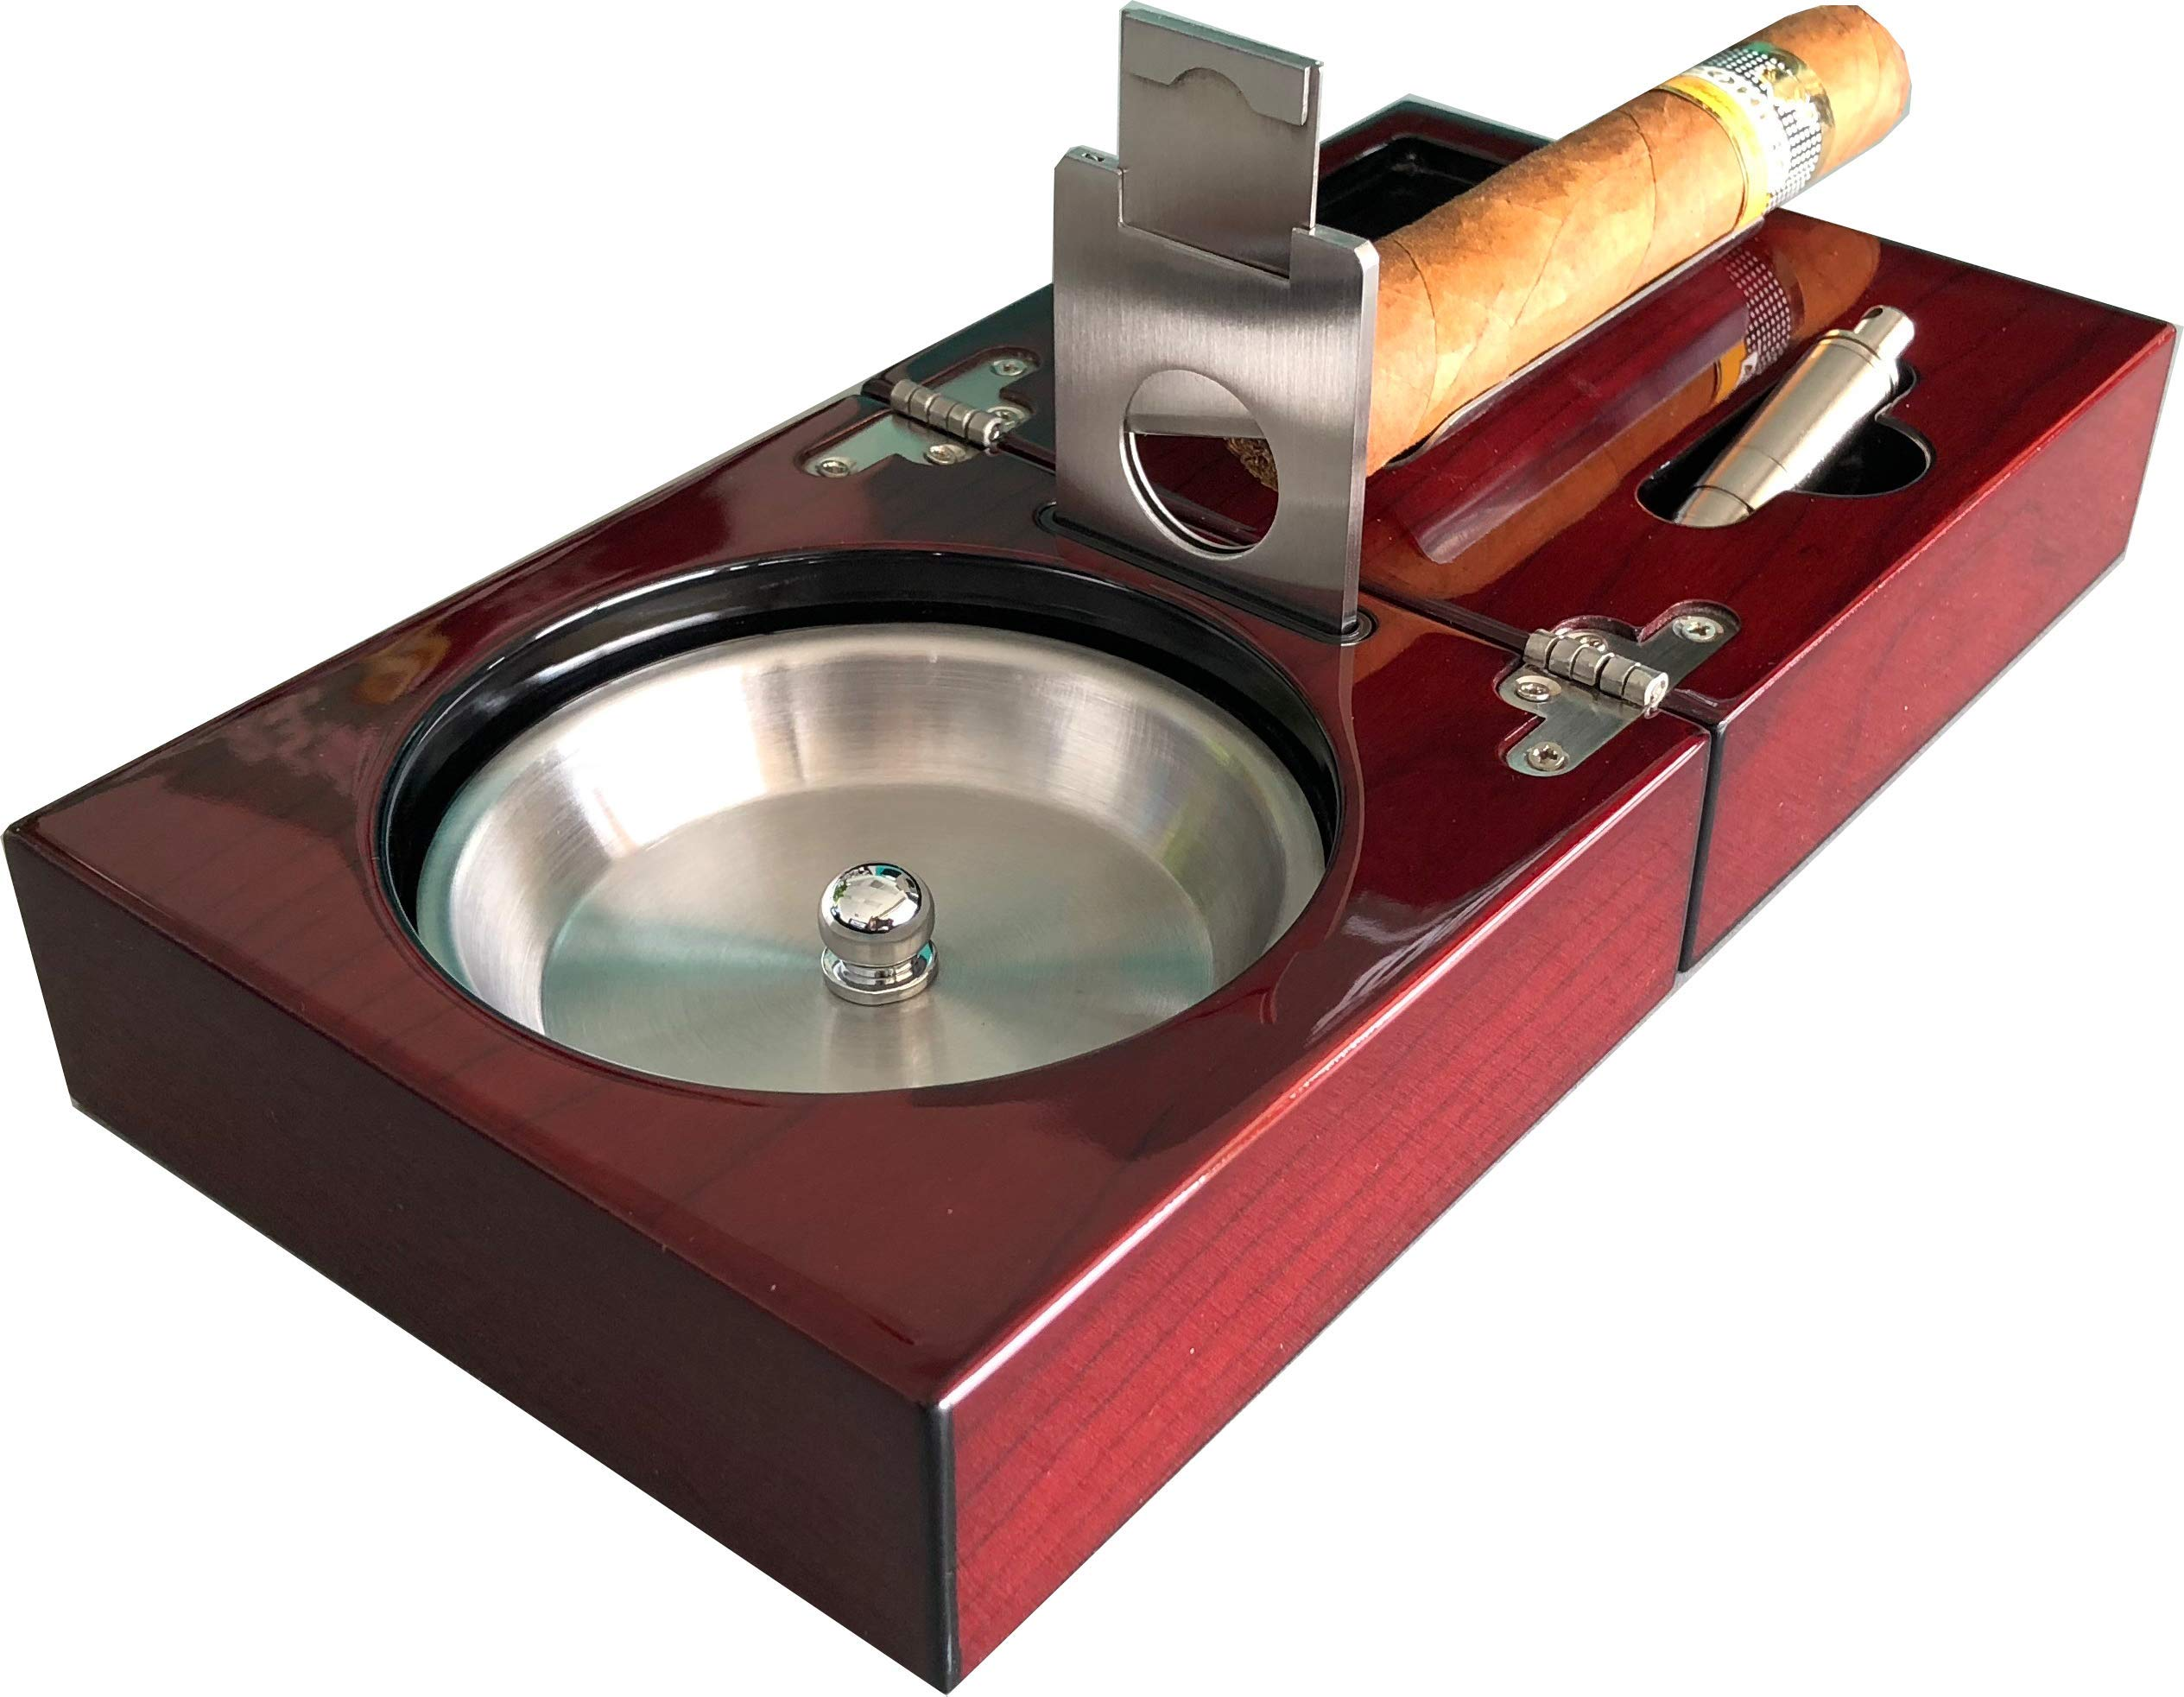 H&H The Compact Cigar Ashtray with Cigar Cutter and Punch - Cherry - (4.75 x 4.75 x 2.8) by H&H